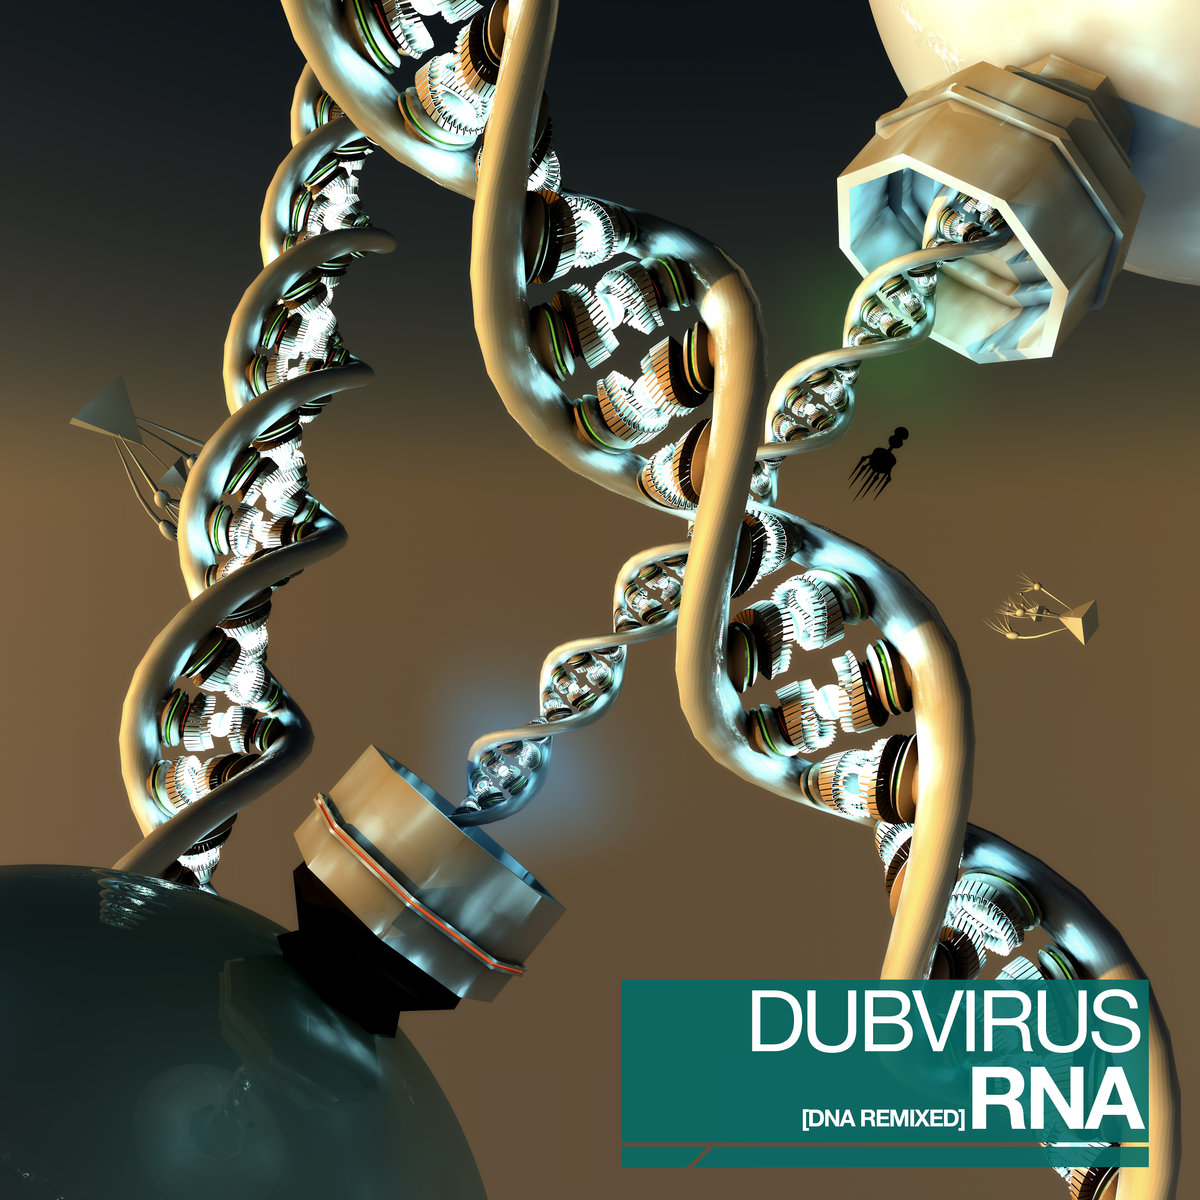 Dubvirus - RNA (DNA Remixed) @ 'RNA (DNA Remixed)' album (bass, dubvirus)